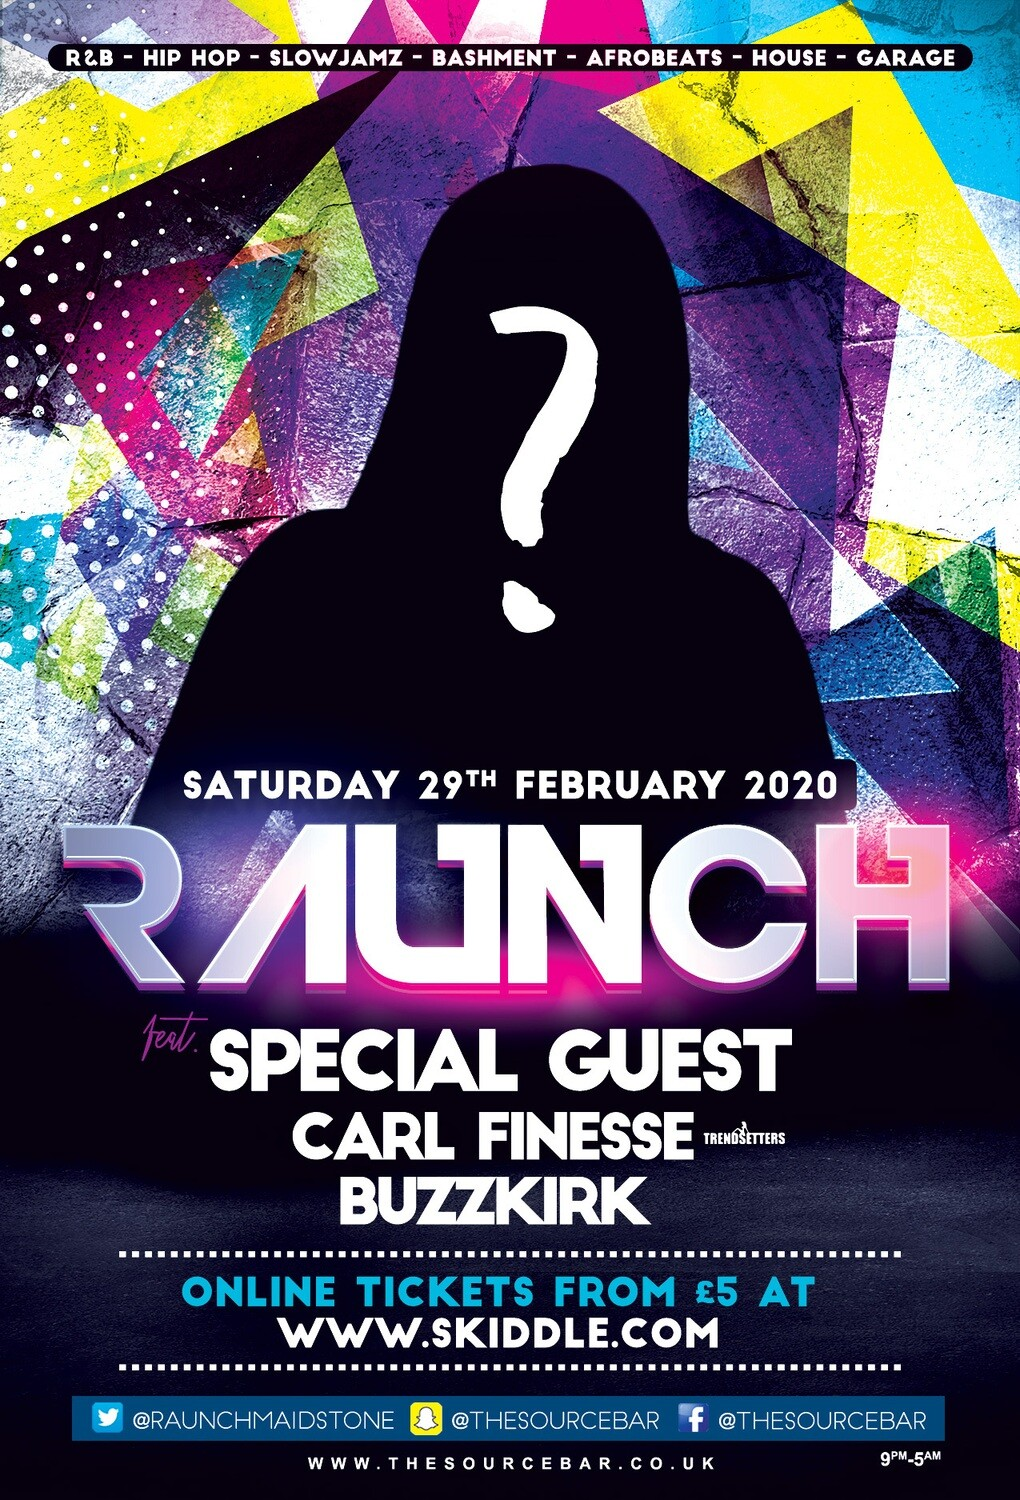 Saturday 29th February 2020 - Raunch w/ Special Guest